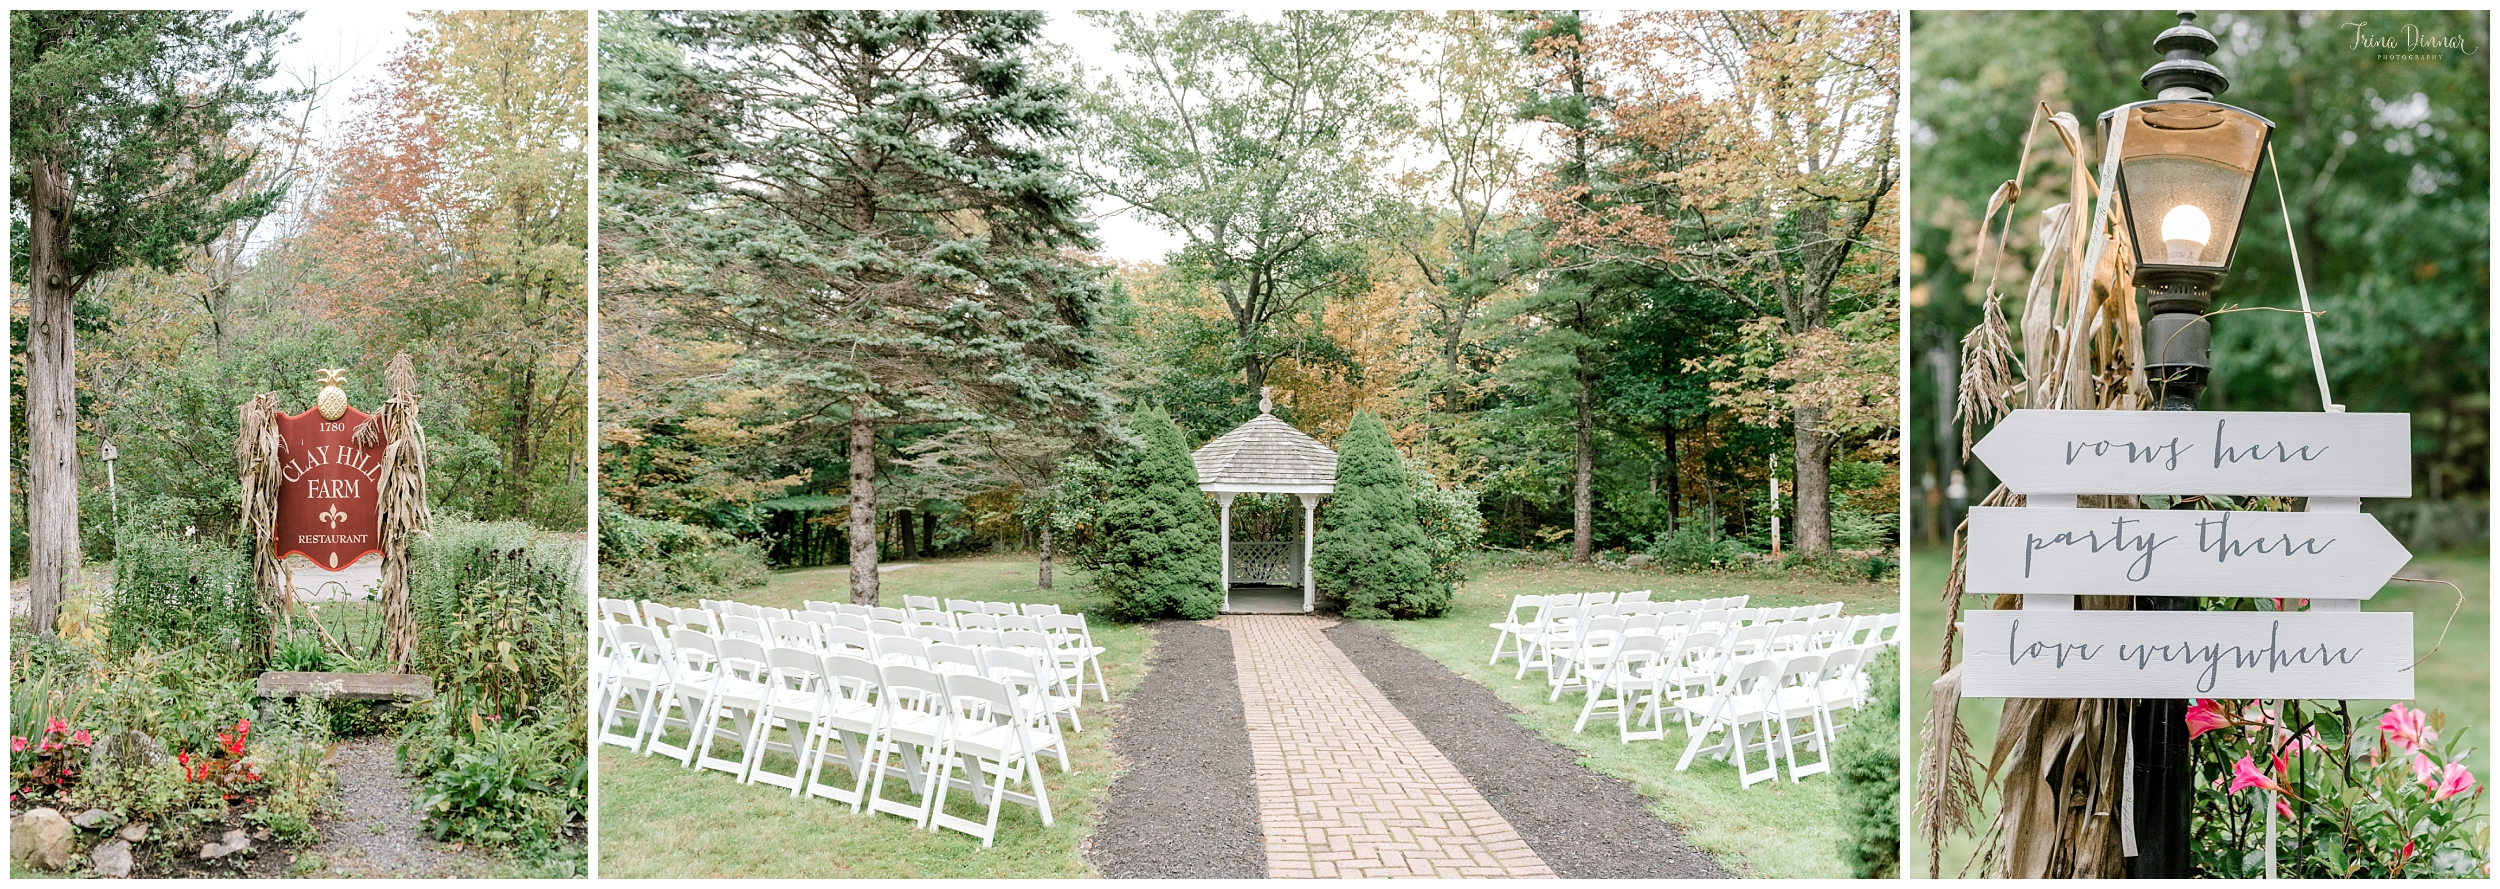 Mallori and James' October Wedding Ceremony at Clay Hill Farm